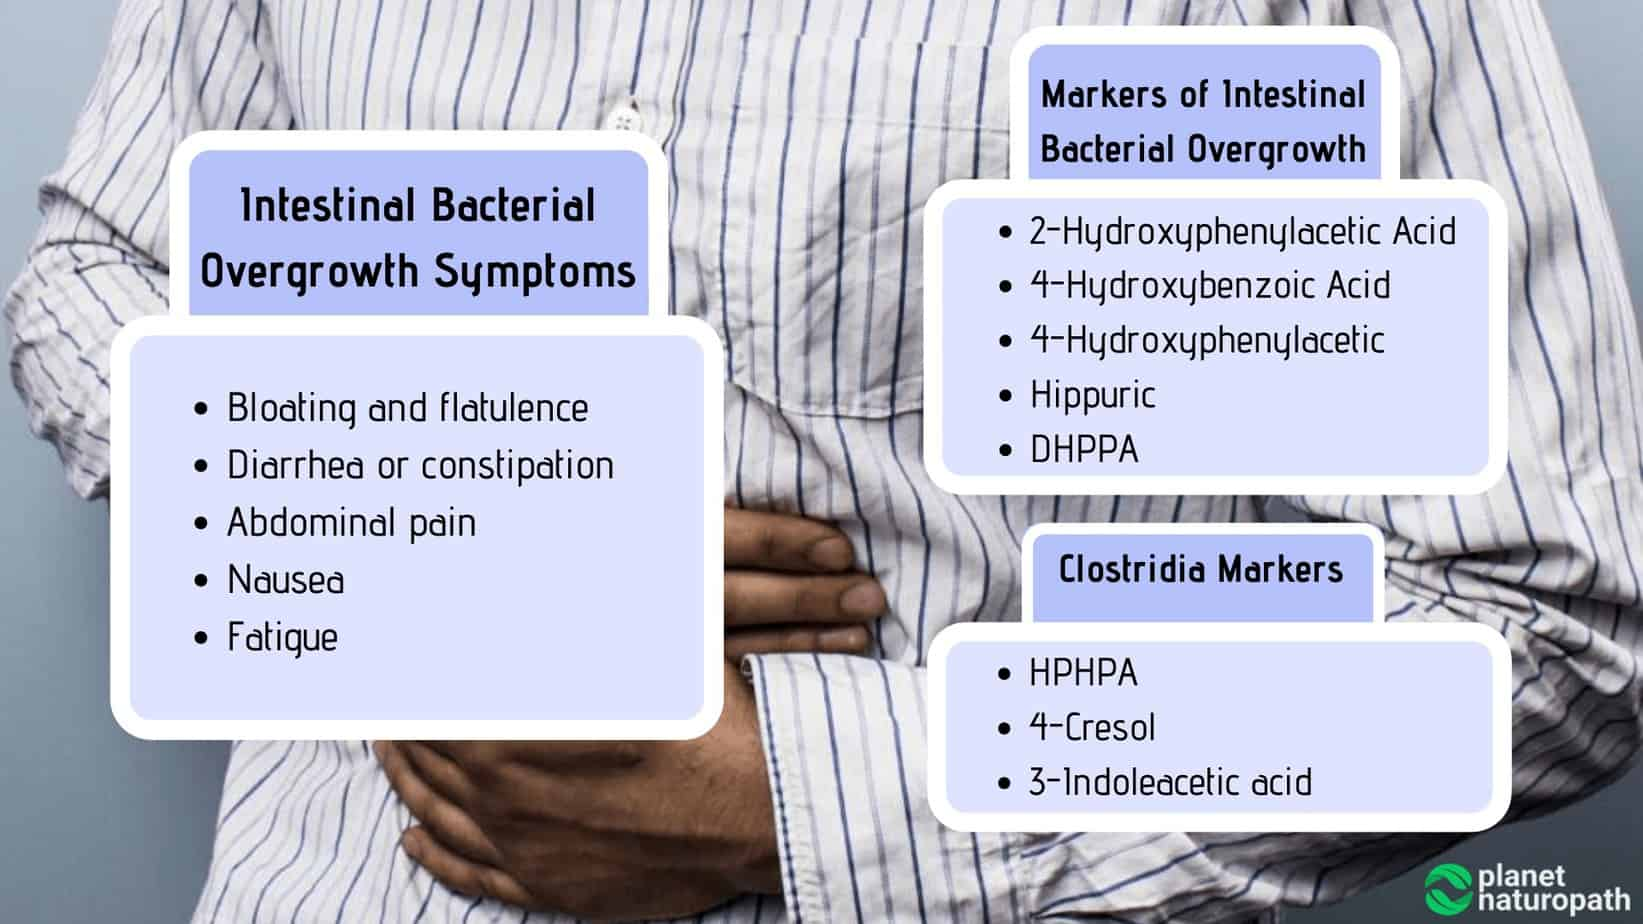 Markers-of-Intestinal-Bacterial-Overgrowth